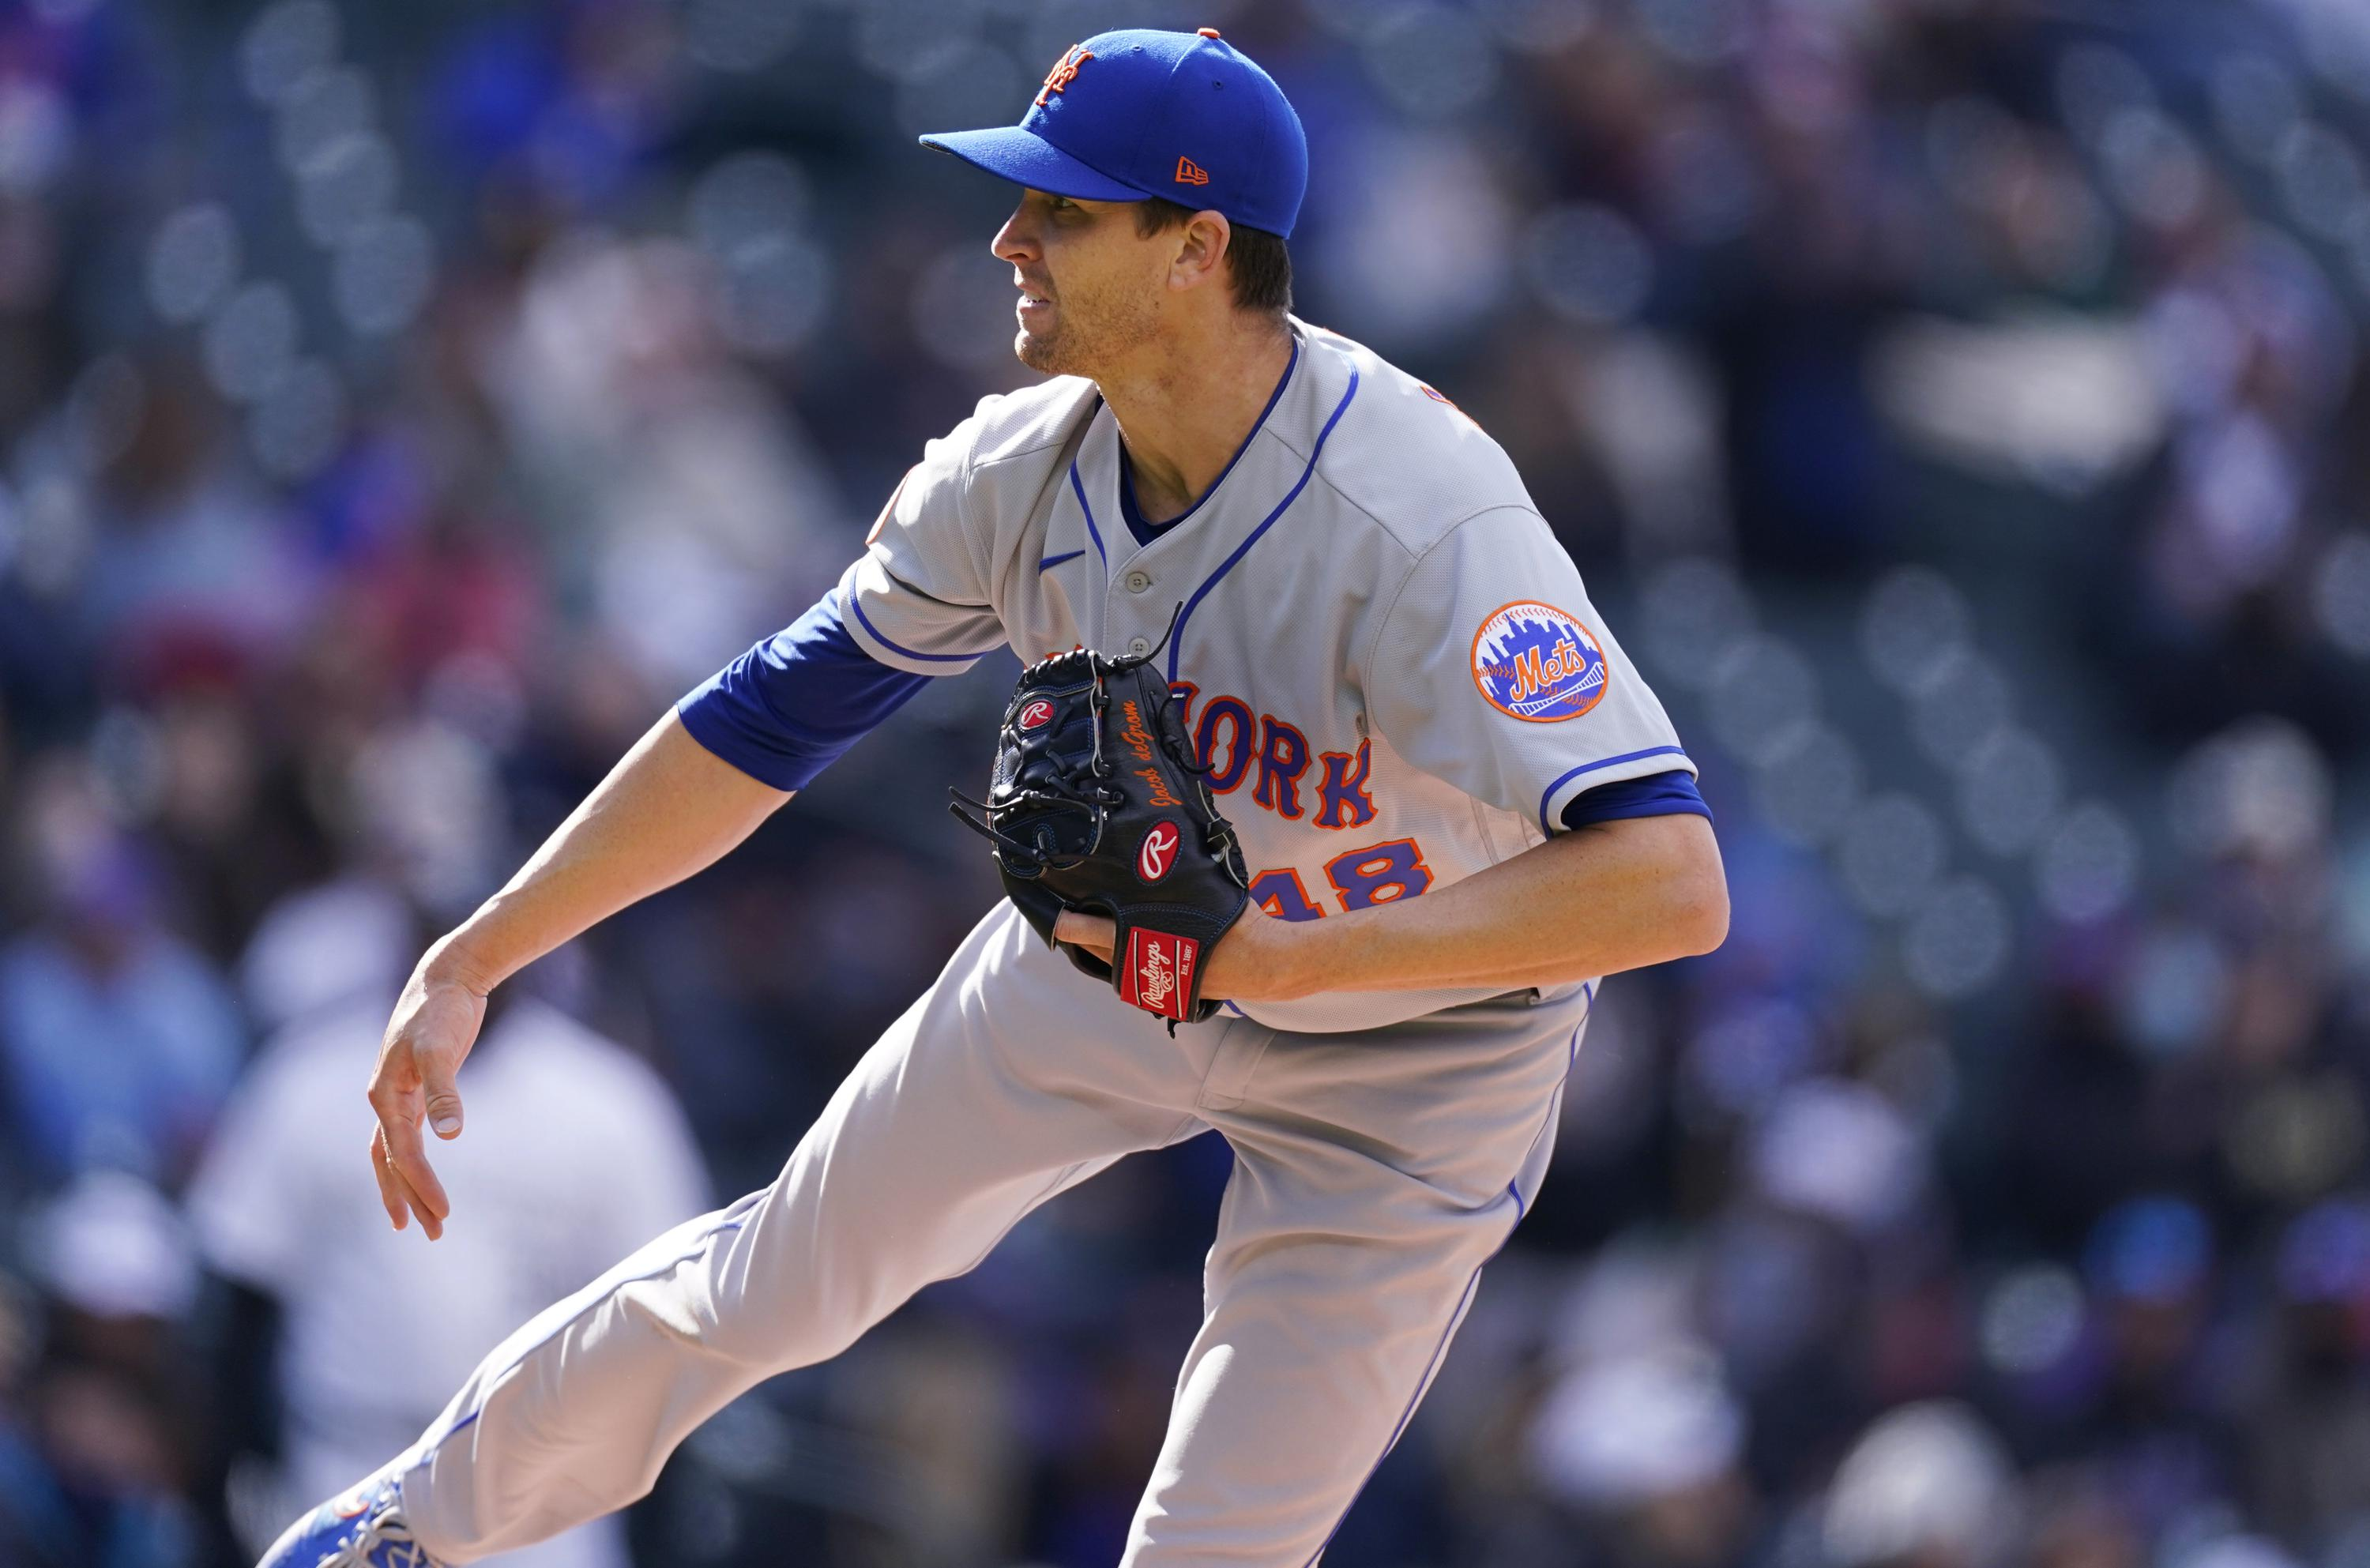 LEADING OFF: Mets' deGrom faces Nats, Kershaw vs Darvish